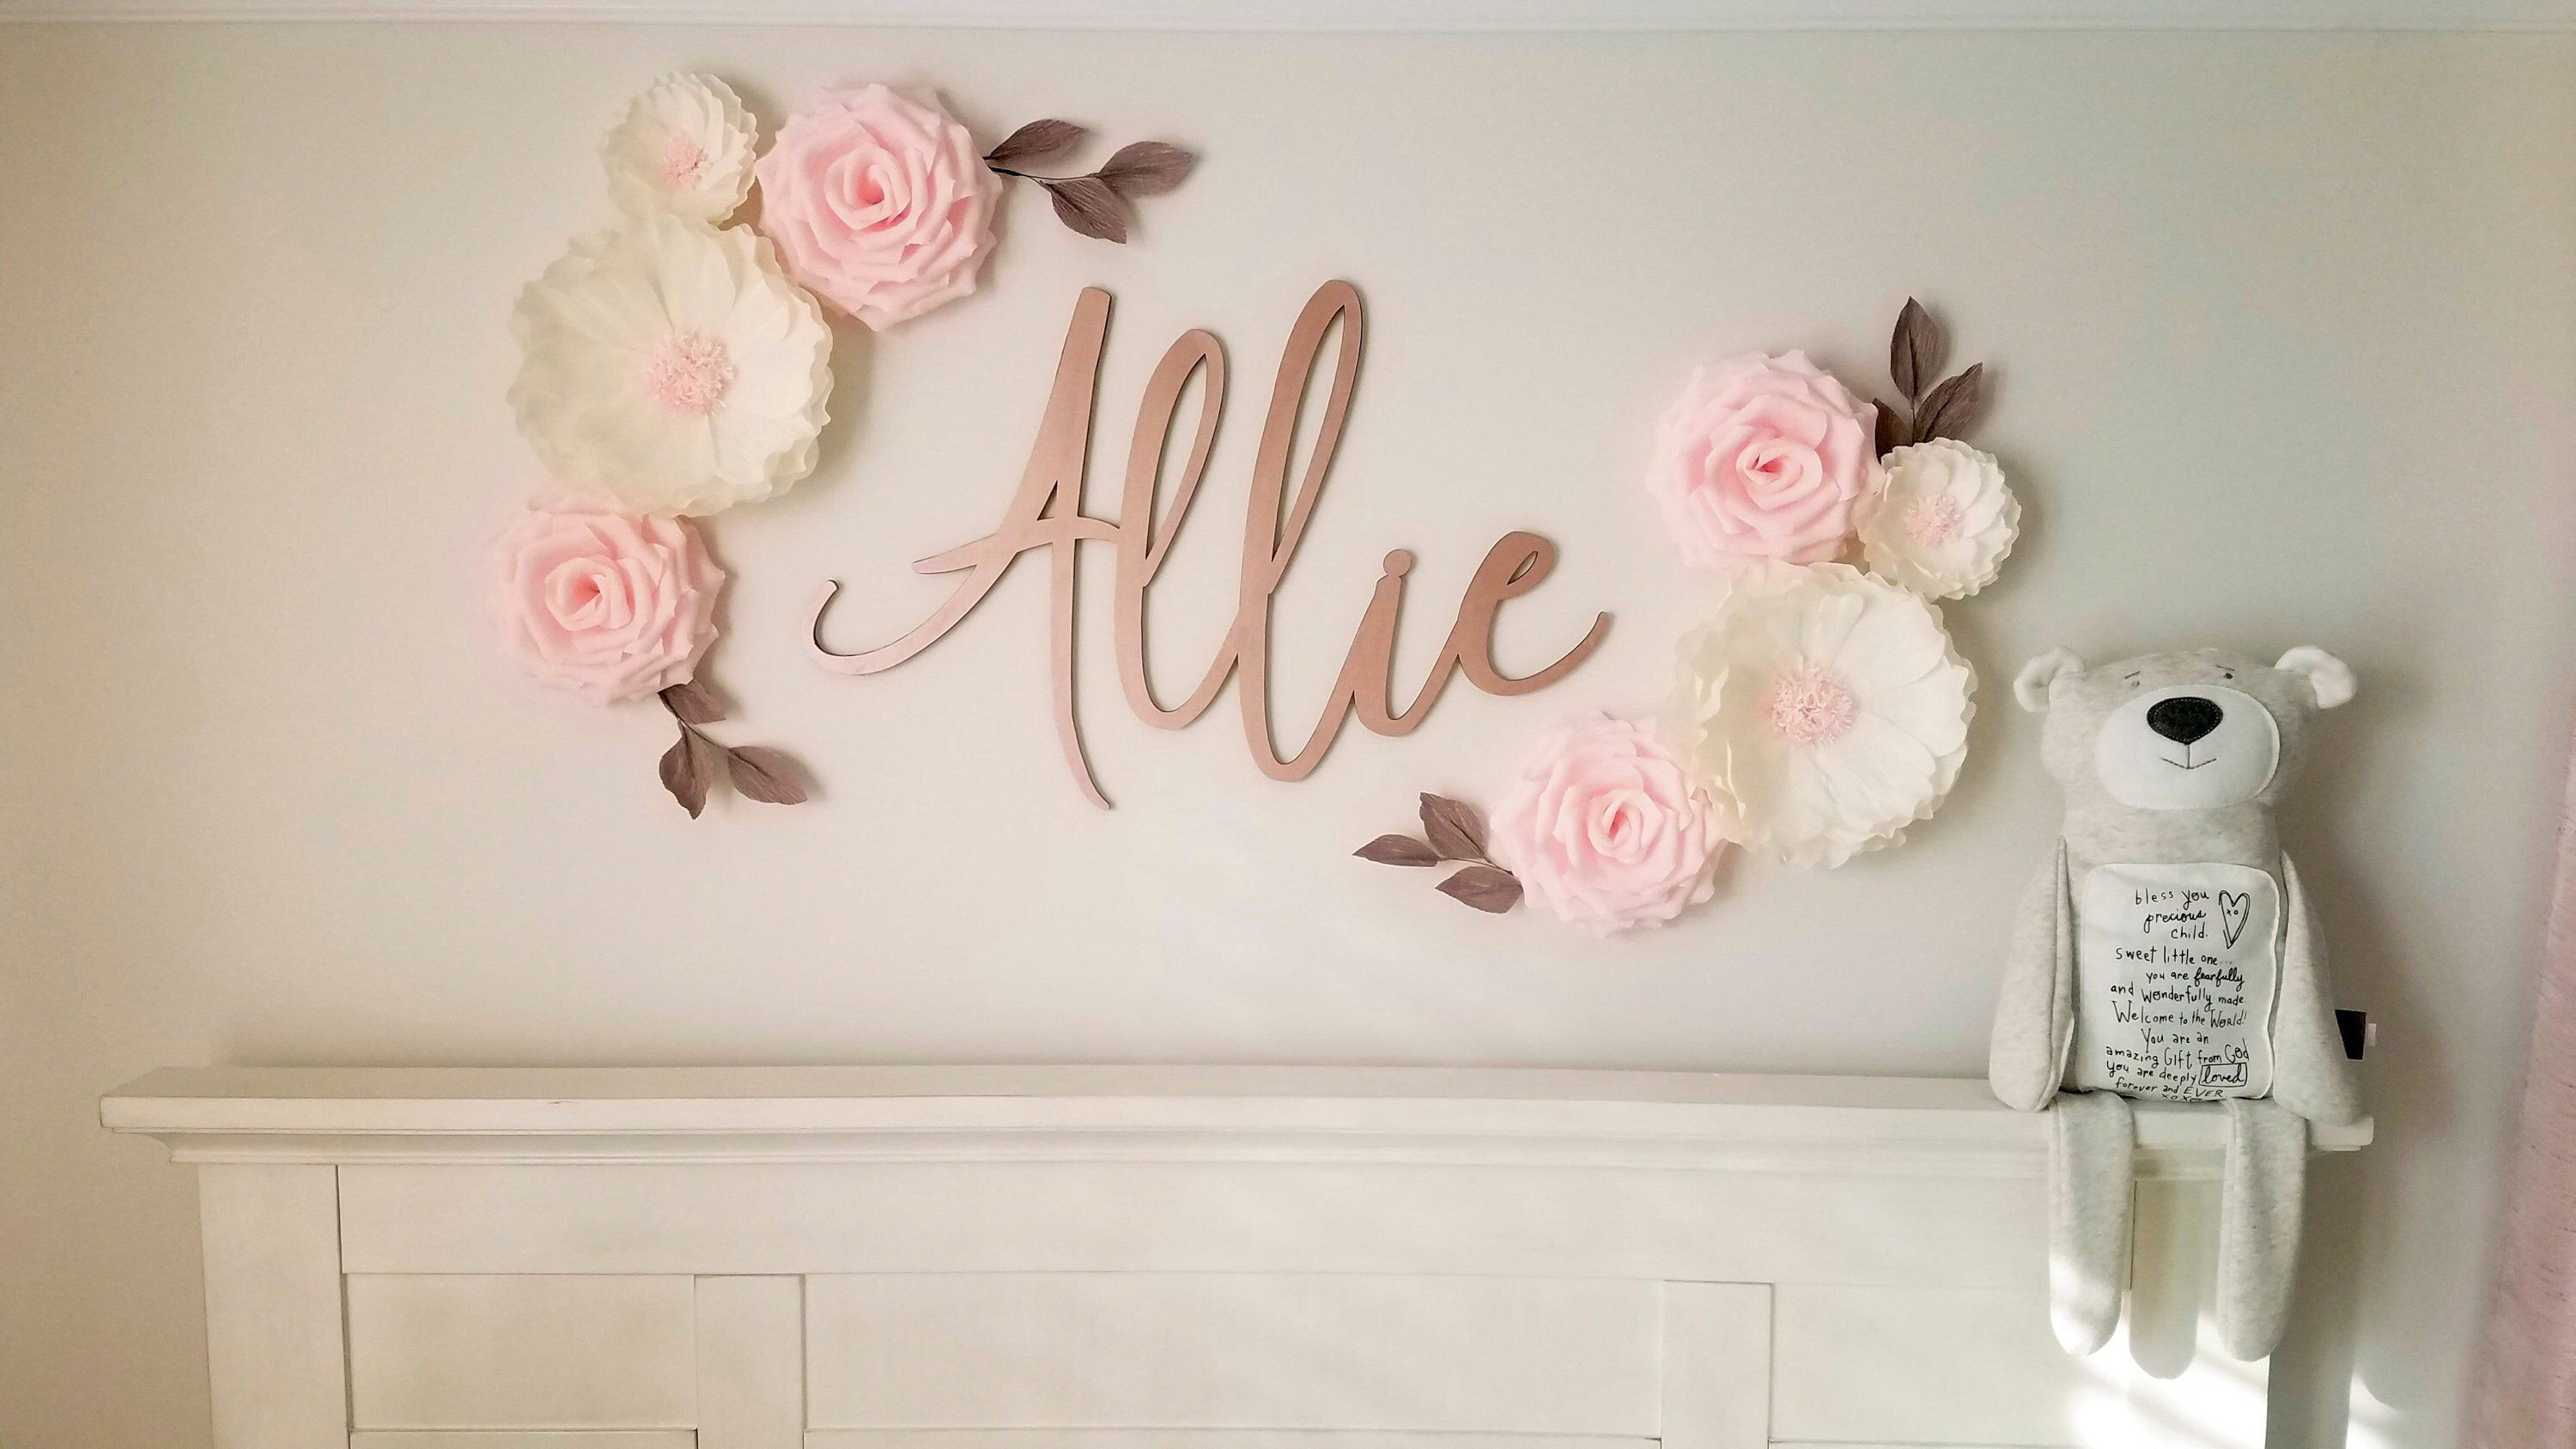 Wall Flowers Paper Flowers Wall Decor Nursery Flowers Paper Flowers Backdrop Baby Shower Decoration Nursery Wall Flowers Nursery Decor Flower Nursery Flower Wall Decor Paper Flower Wall